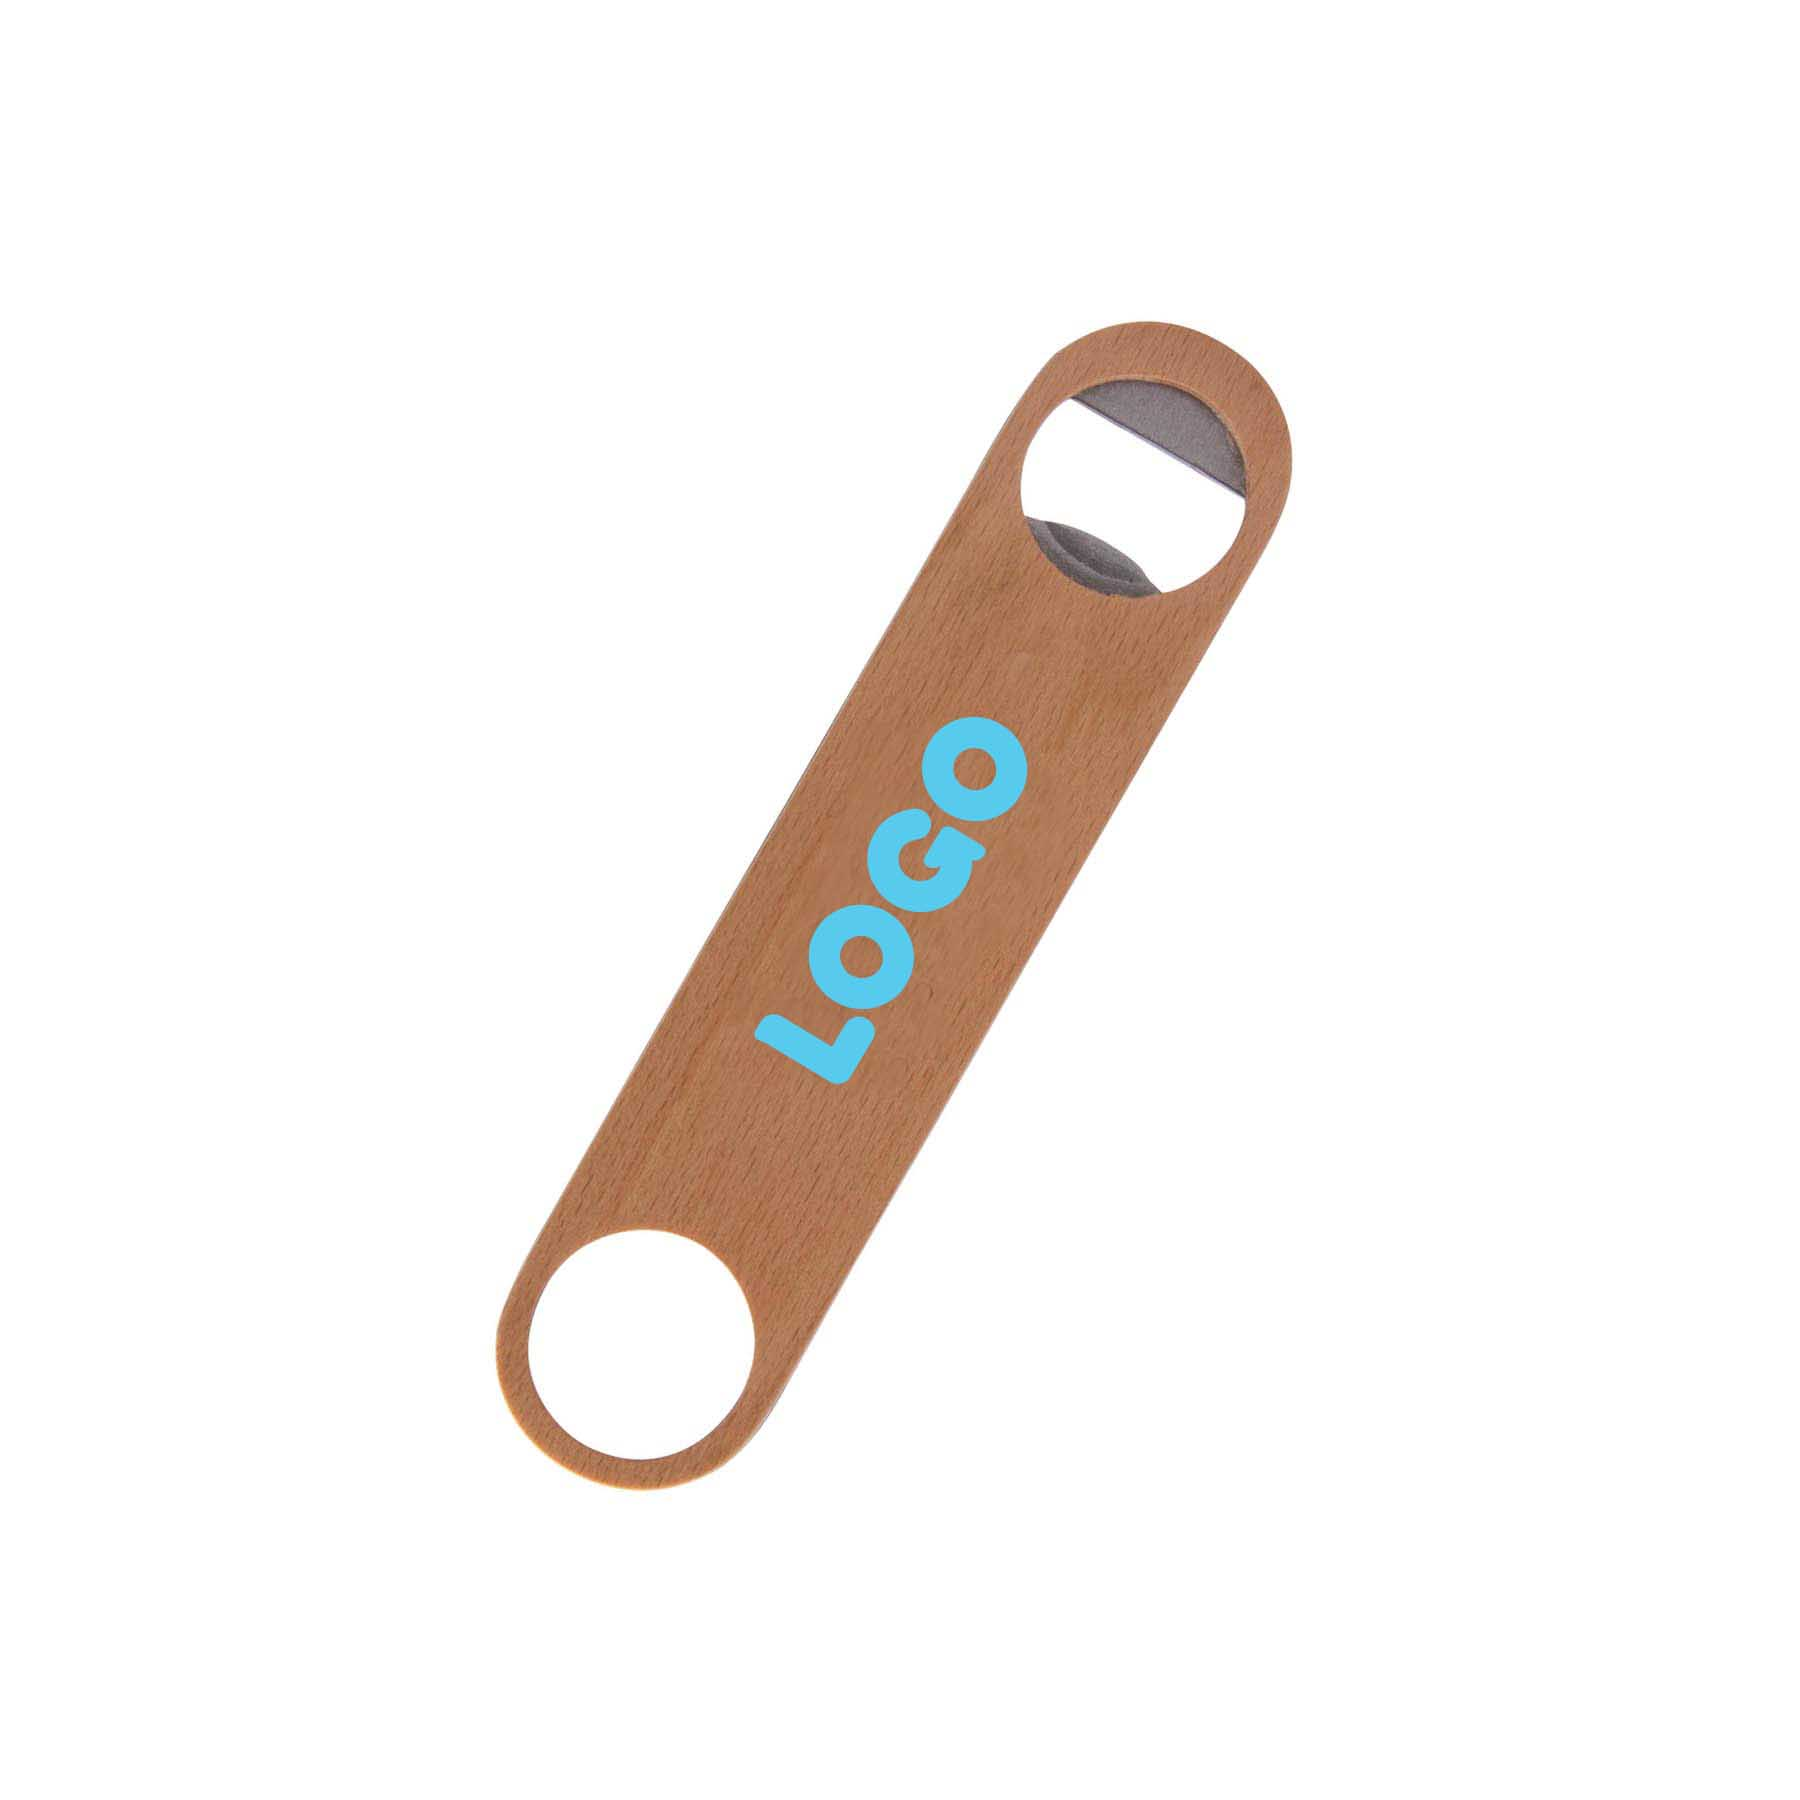 137885 wooden bottle opener one color one location imprint